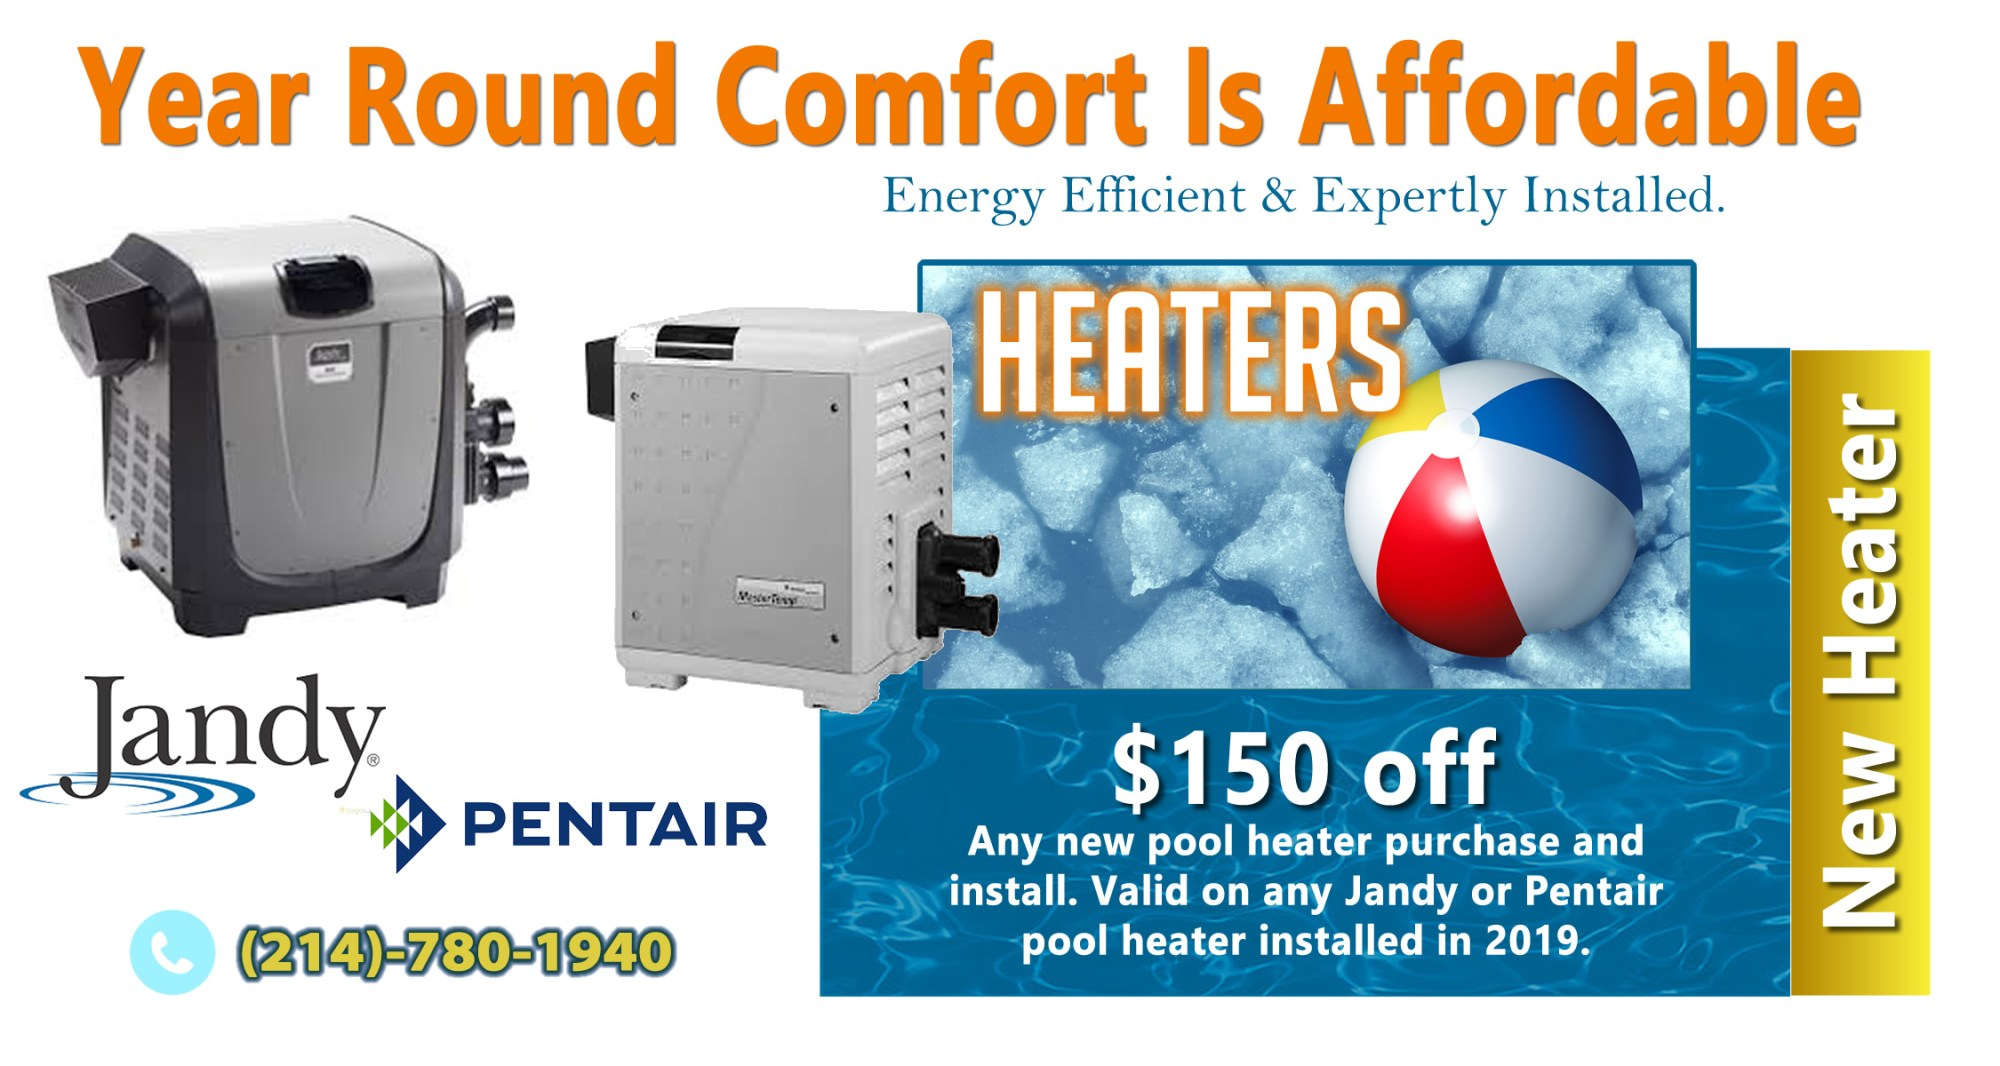 hight resolution of even though we enjoy great year round weather in dallas you really need a pool heater for your inground pool if you intend to use and enjoy your pool all